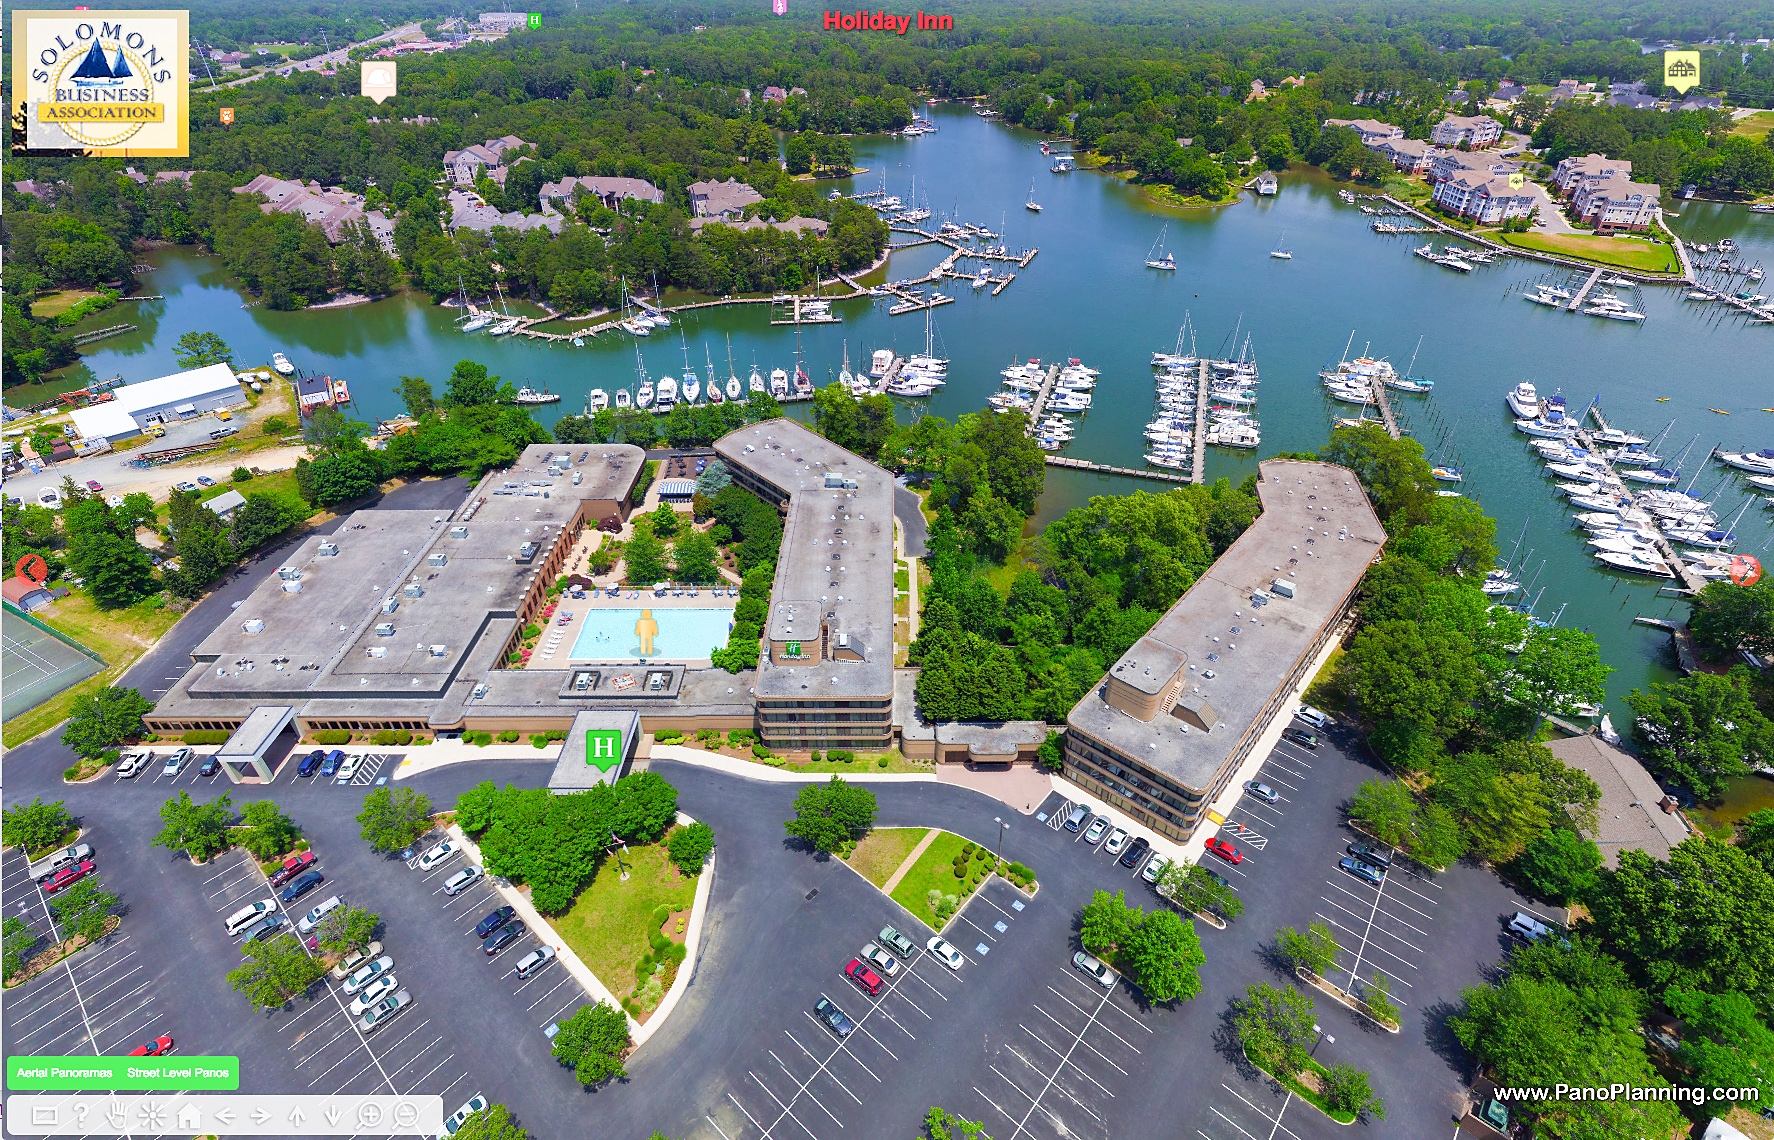 Aerial View of Holiday Inn, Solomons, MD.